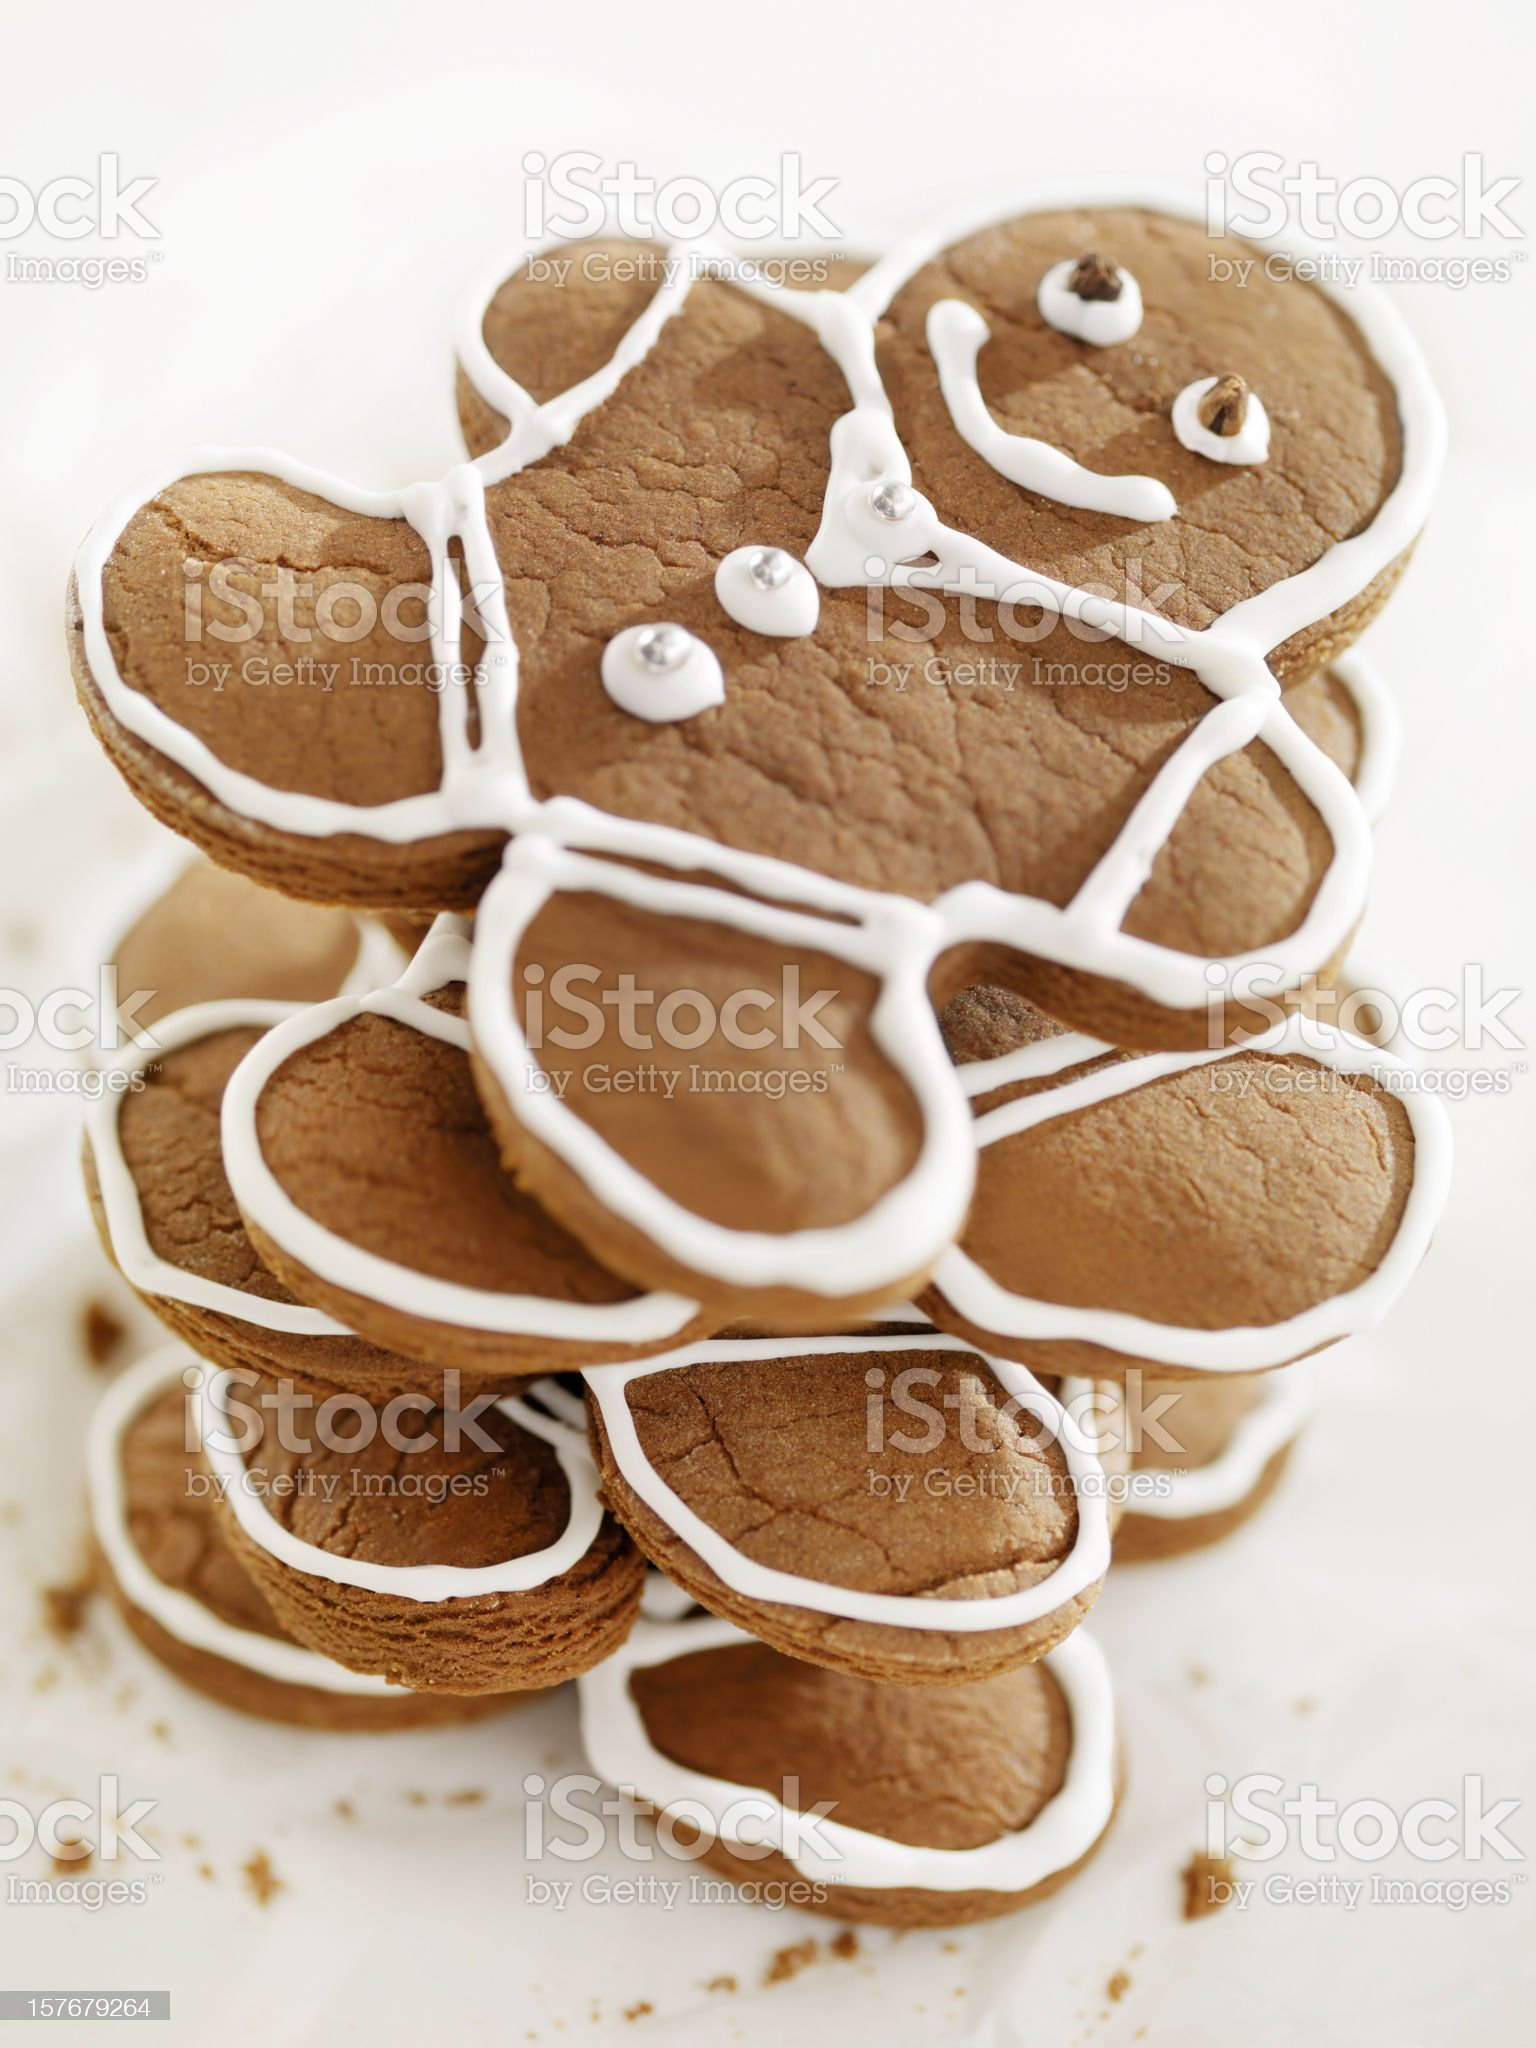 Gingerbread Men Cookies at Christmas Time royalty-free stock photo